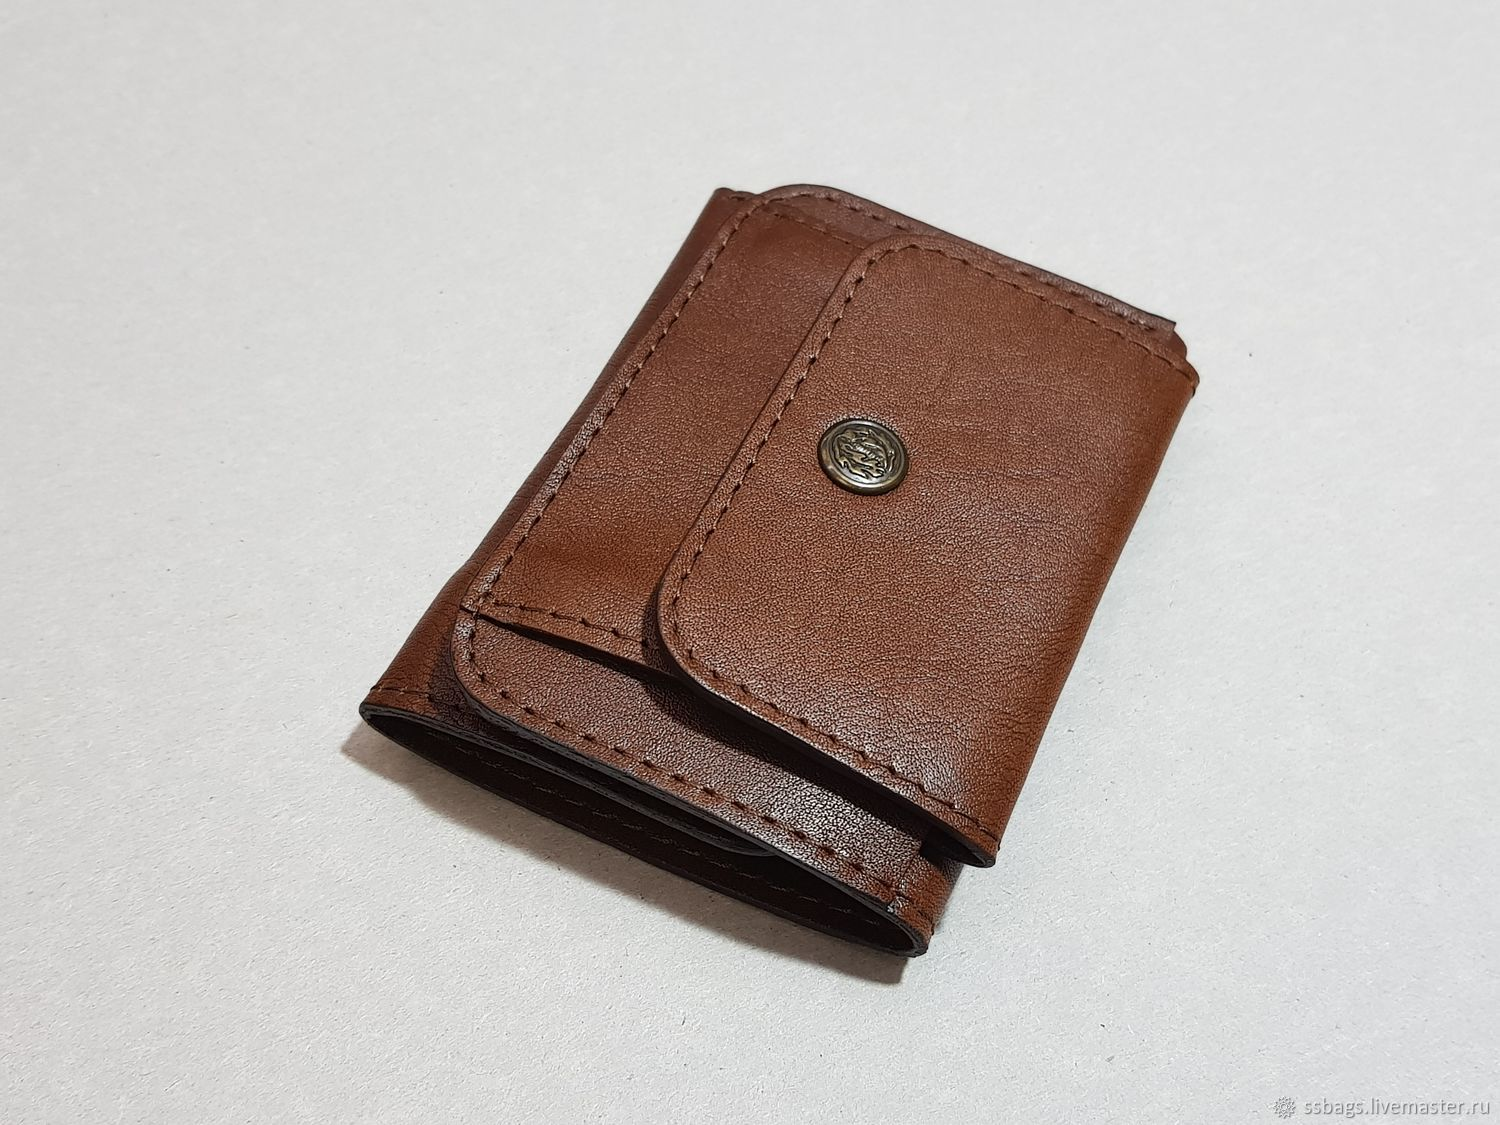 Small leather purse brown, Wallets, St. Petersburg,  Фото №1